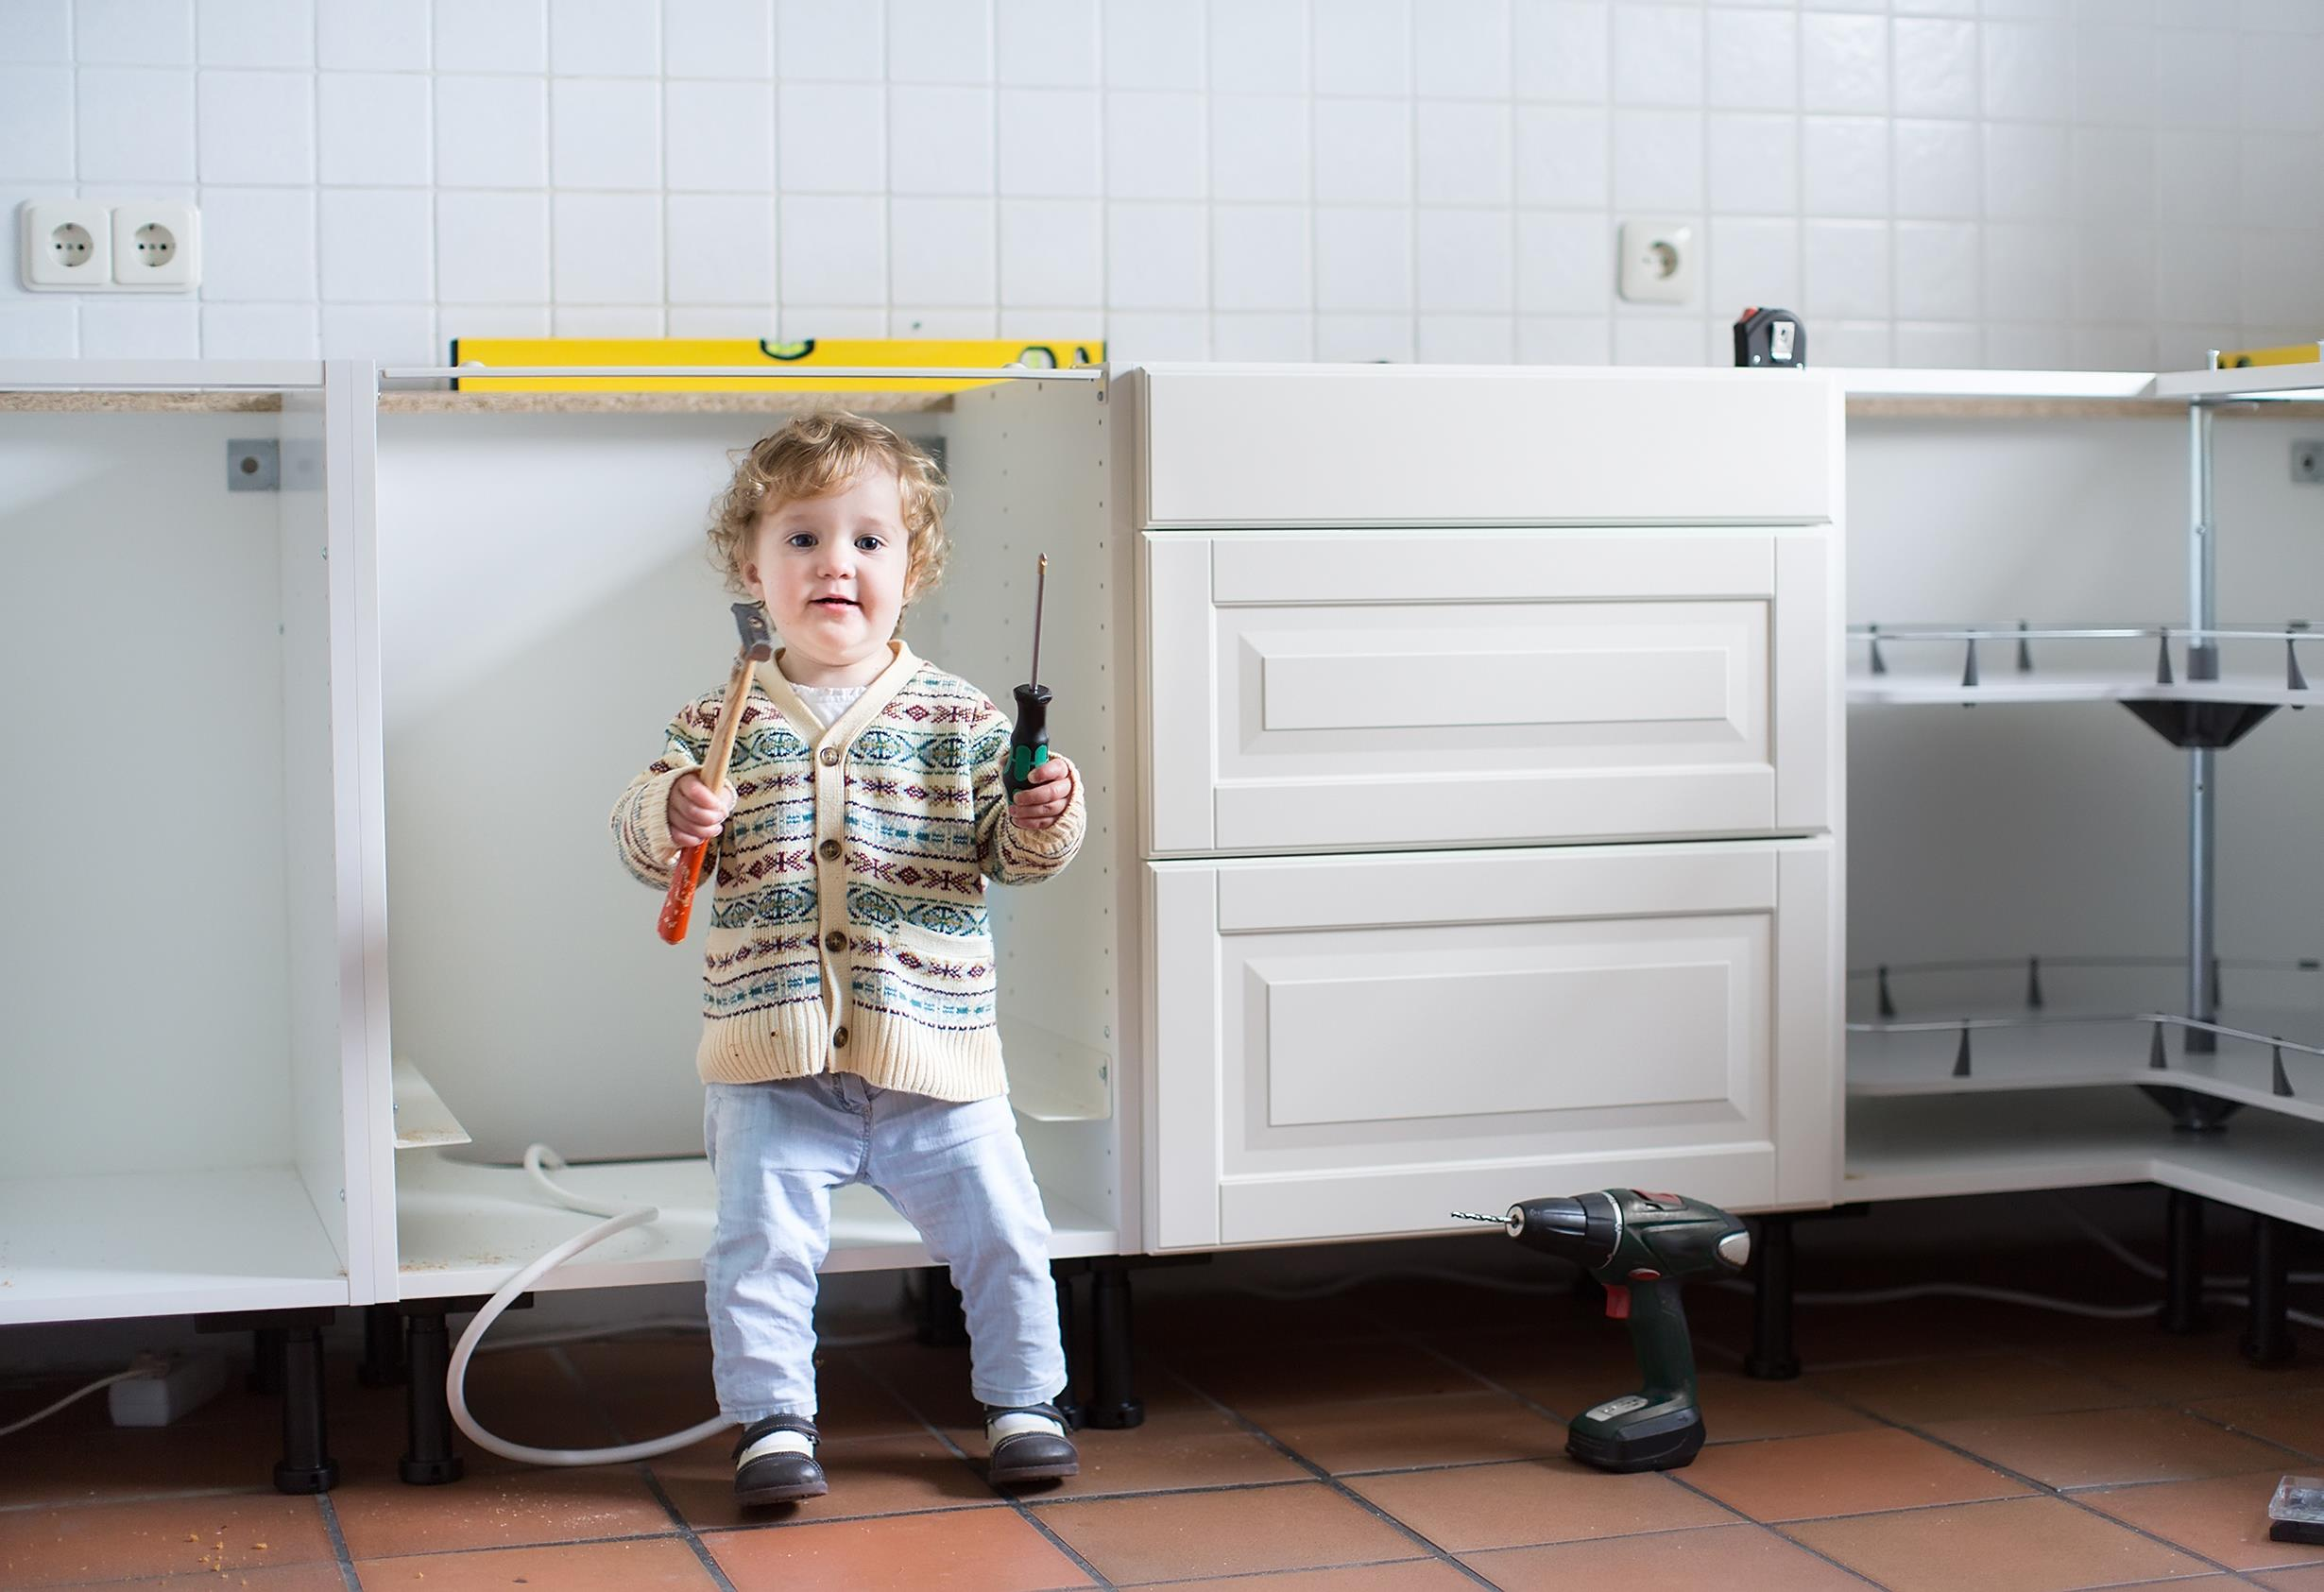 Child in Kitchen during renovation